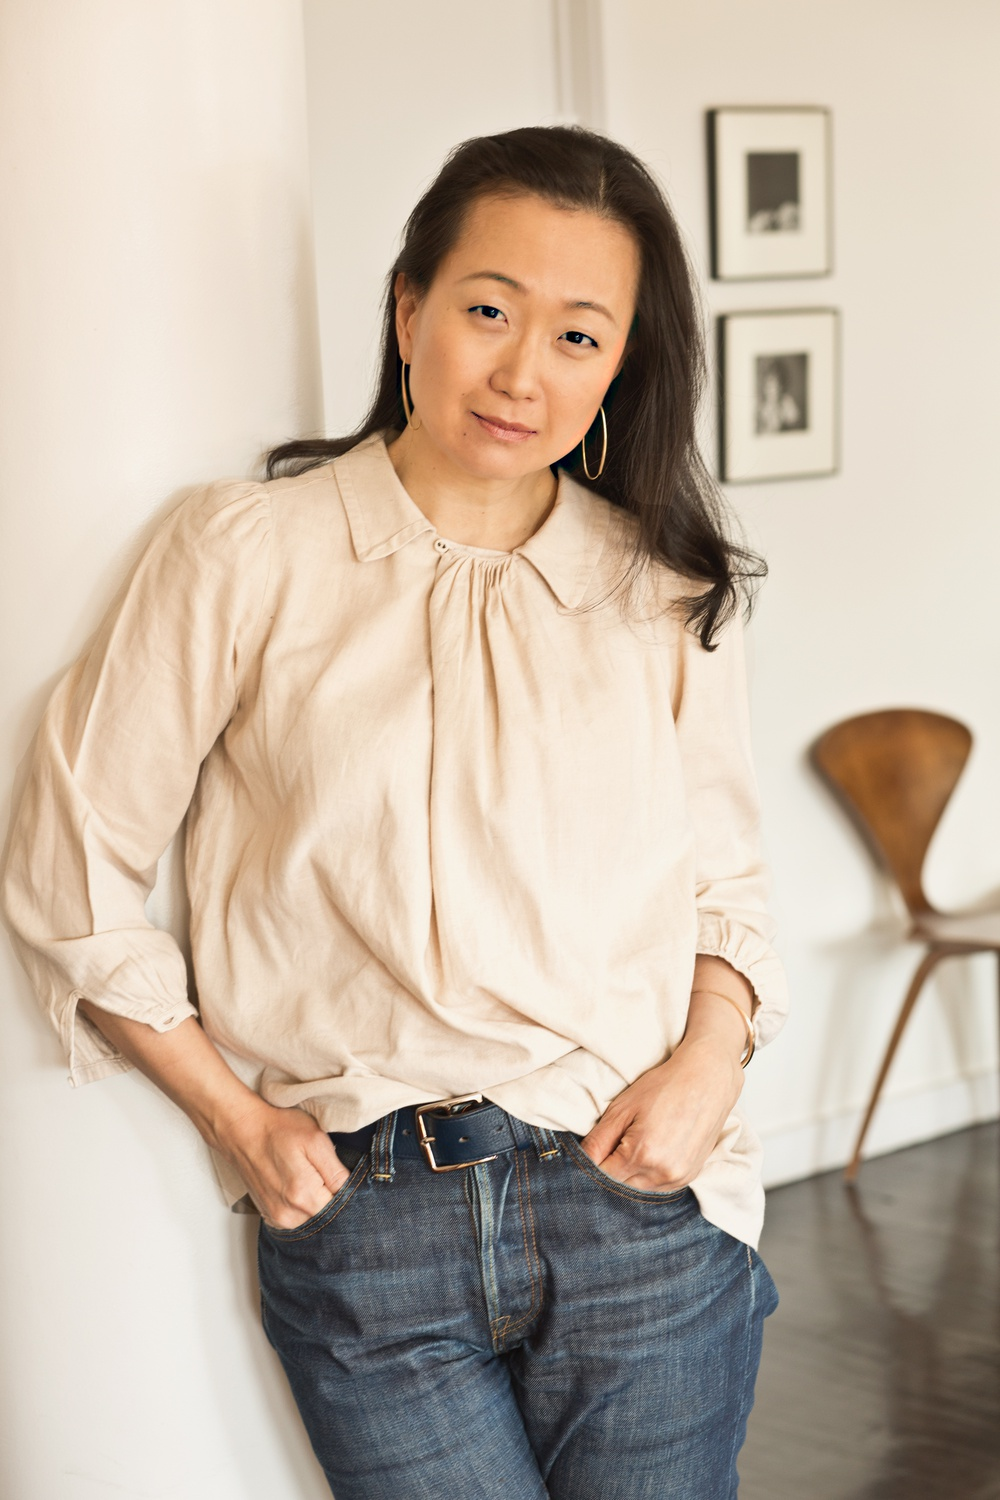 Min Jin Lee is the author of New York Times bestseller and National Book Award finalist Pachinko.